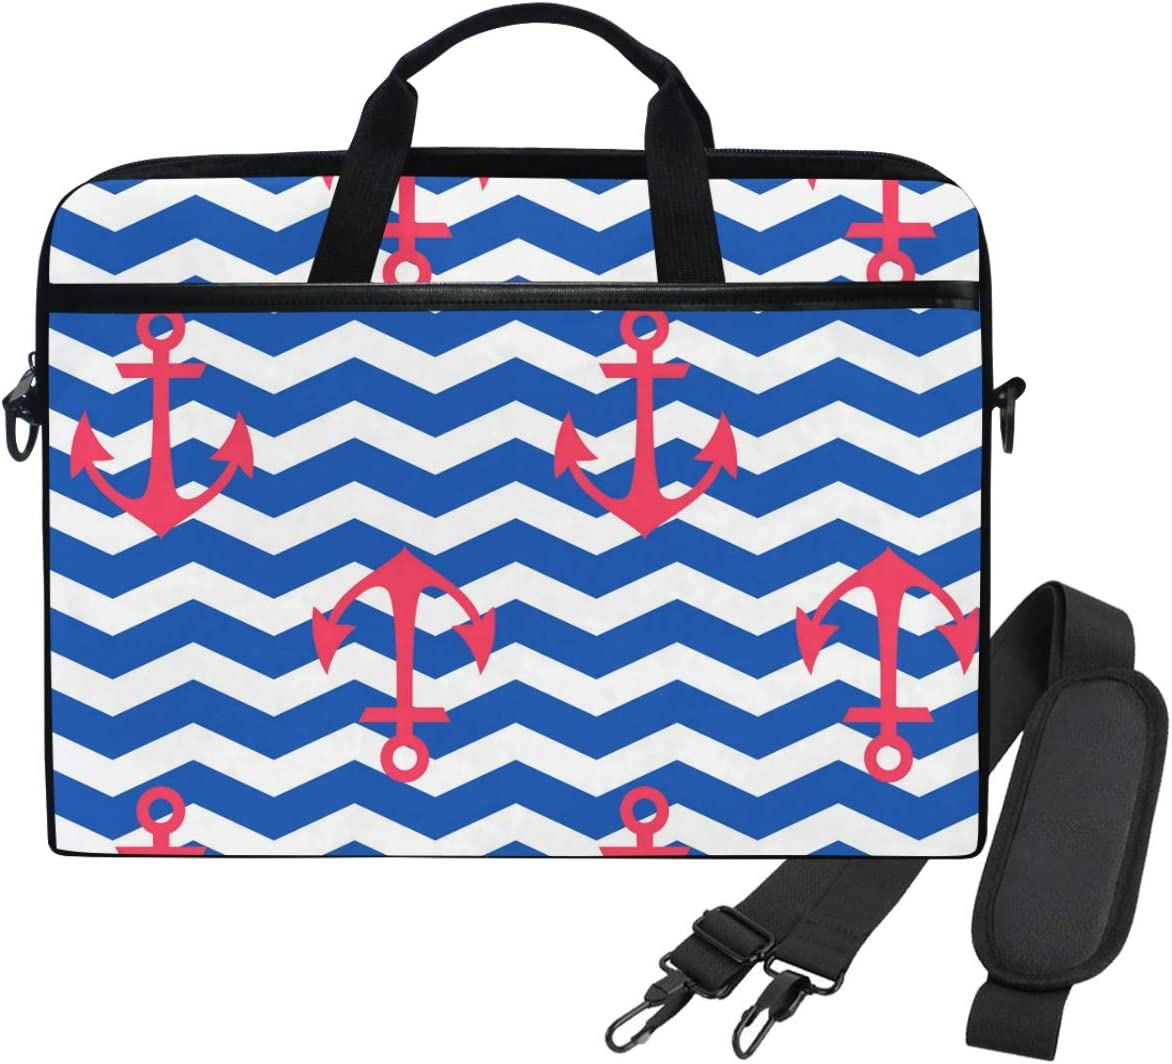 WIHVE 14 Inch Laptop Case Geometric Nautical Anchors Blue Chevron Laptop Shoulder Bag Carrying Case with Strap for Women and Men